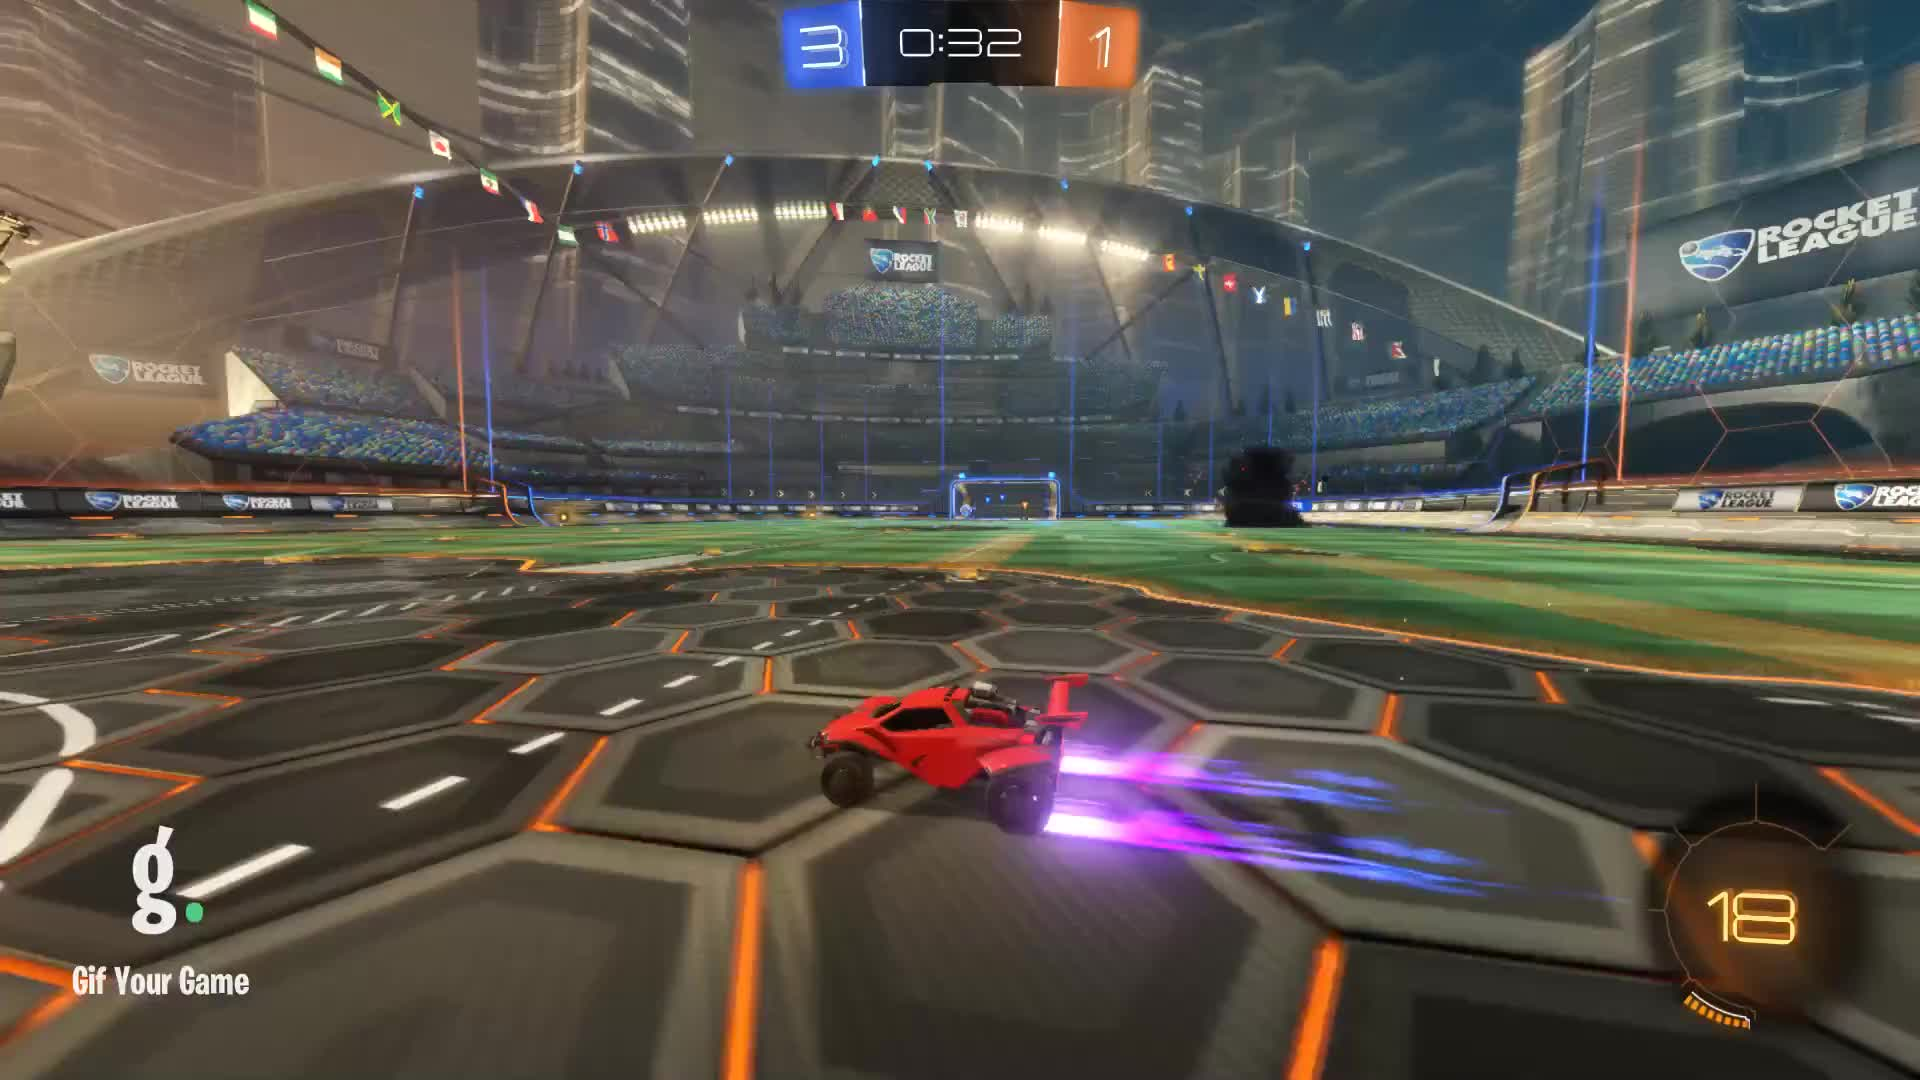 Gif Your Game, GifYourGame, Rabbits, Rocket League, RocketLeague, Remixed Assist 4: Rabbits GIFs